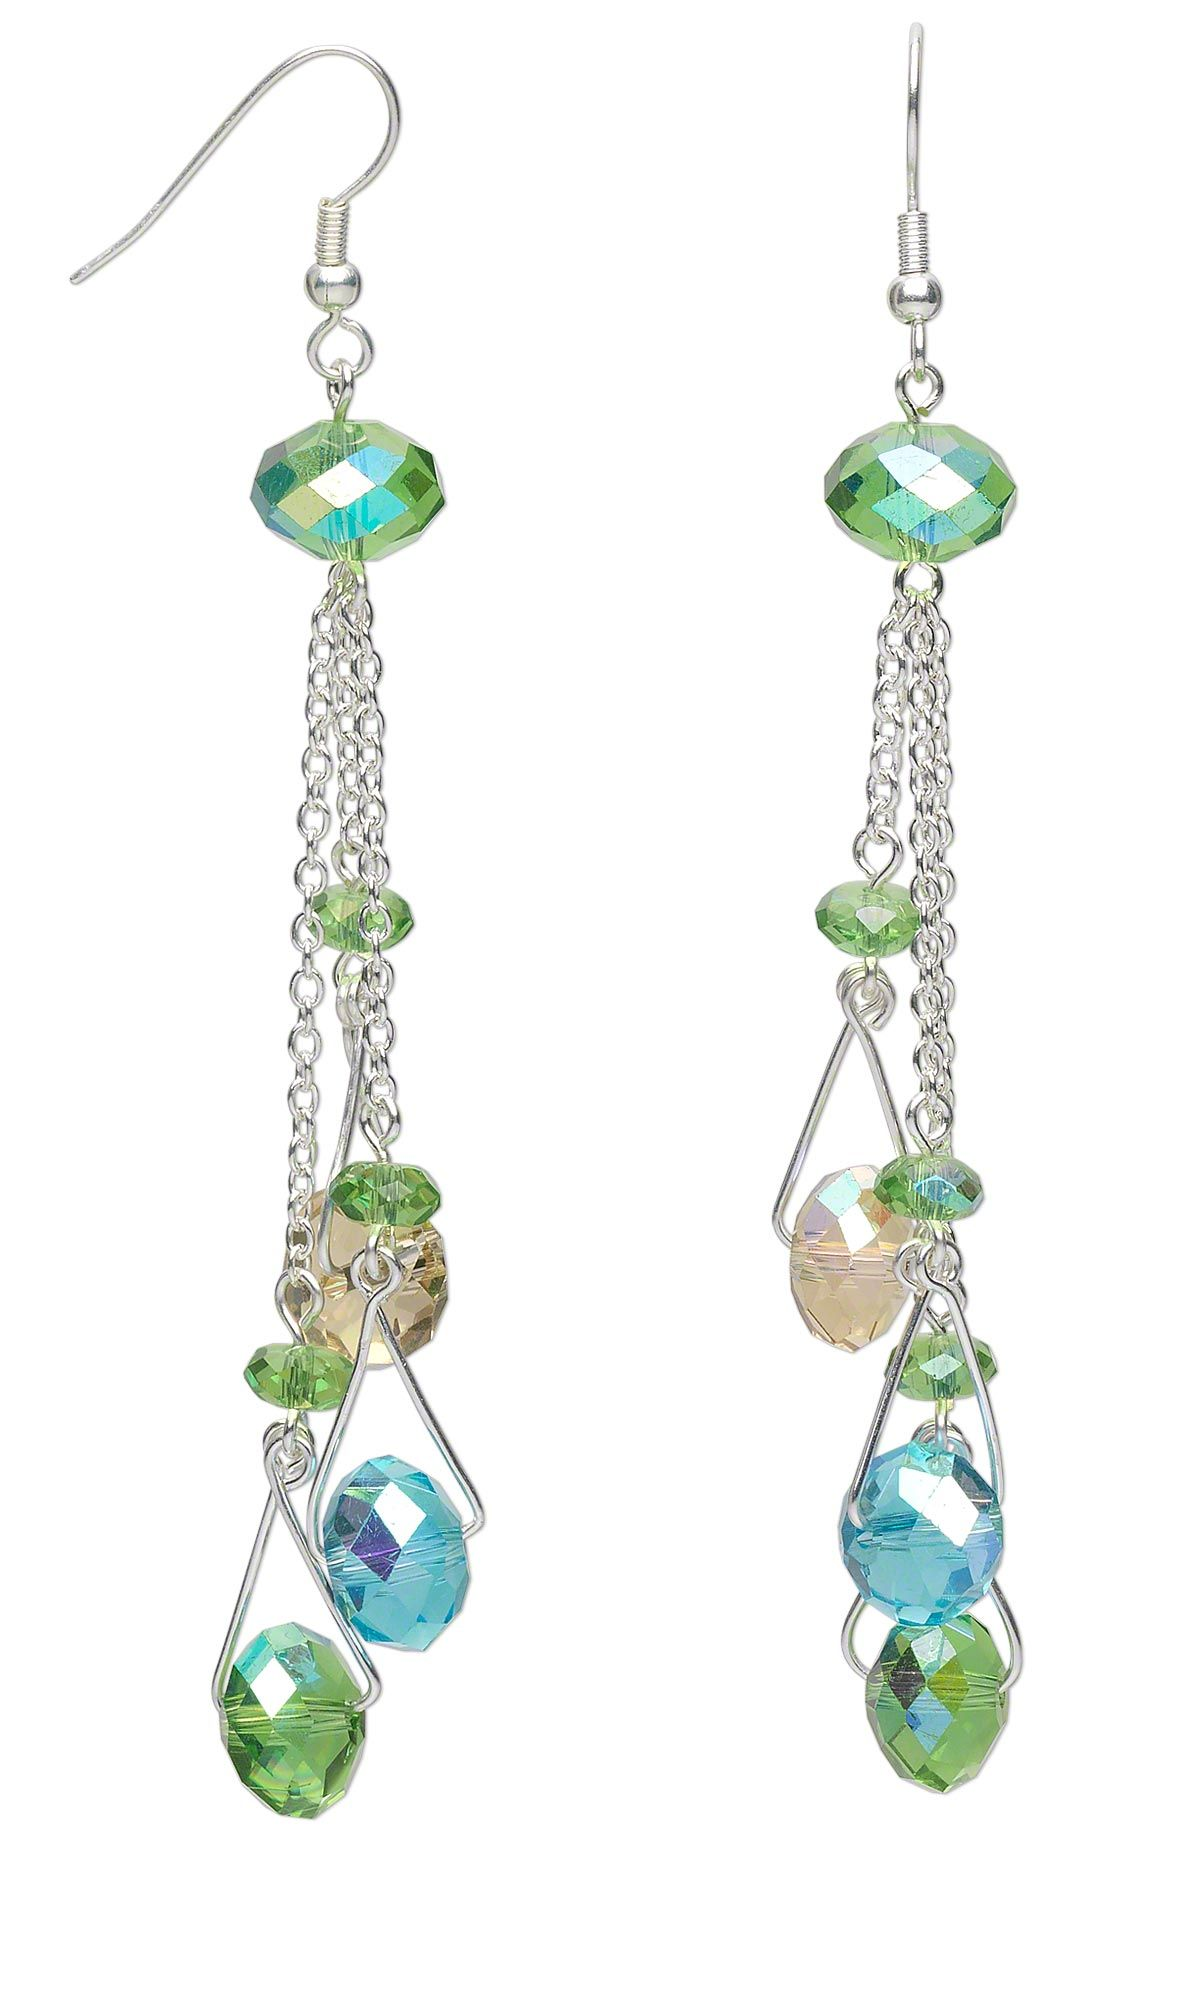 Jewelry Design - Earrings with Celestial Crystal® Beads and Glass ...